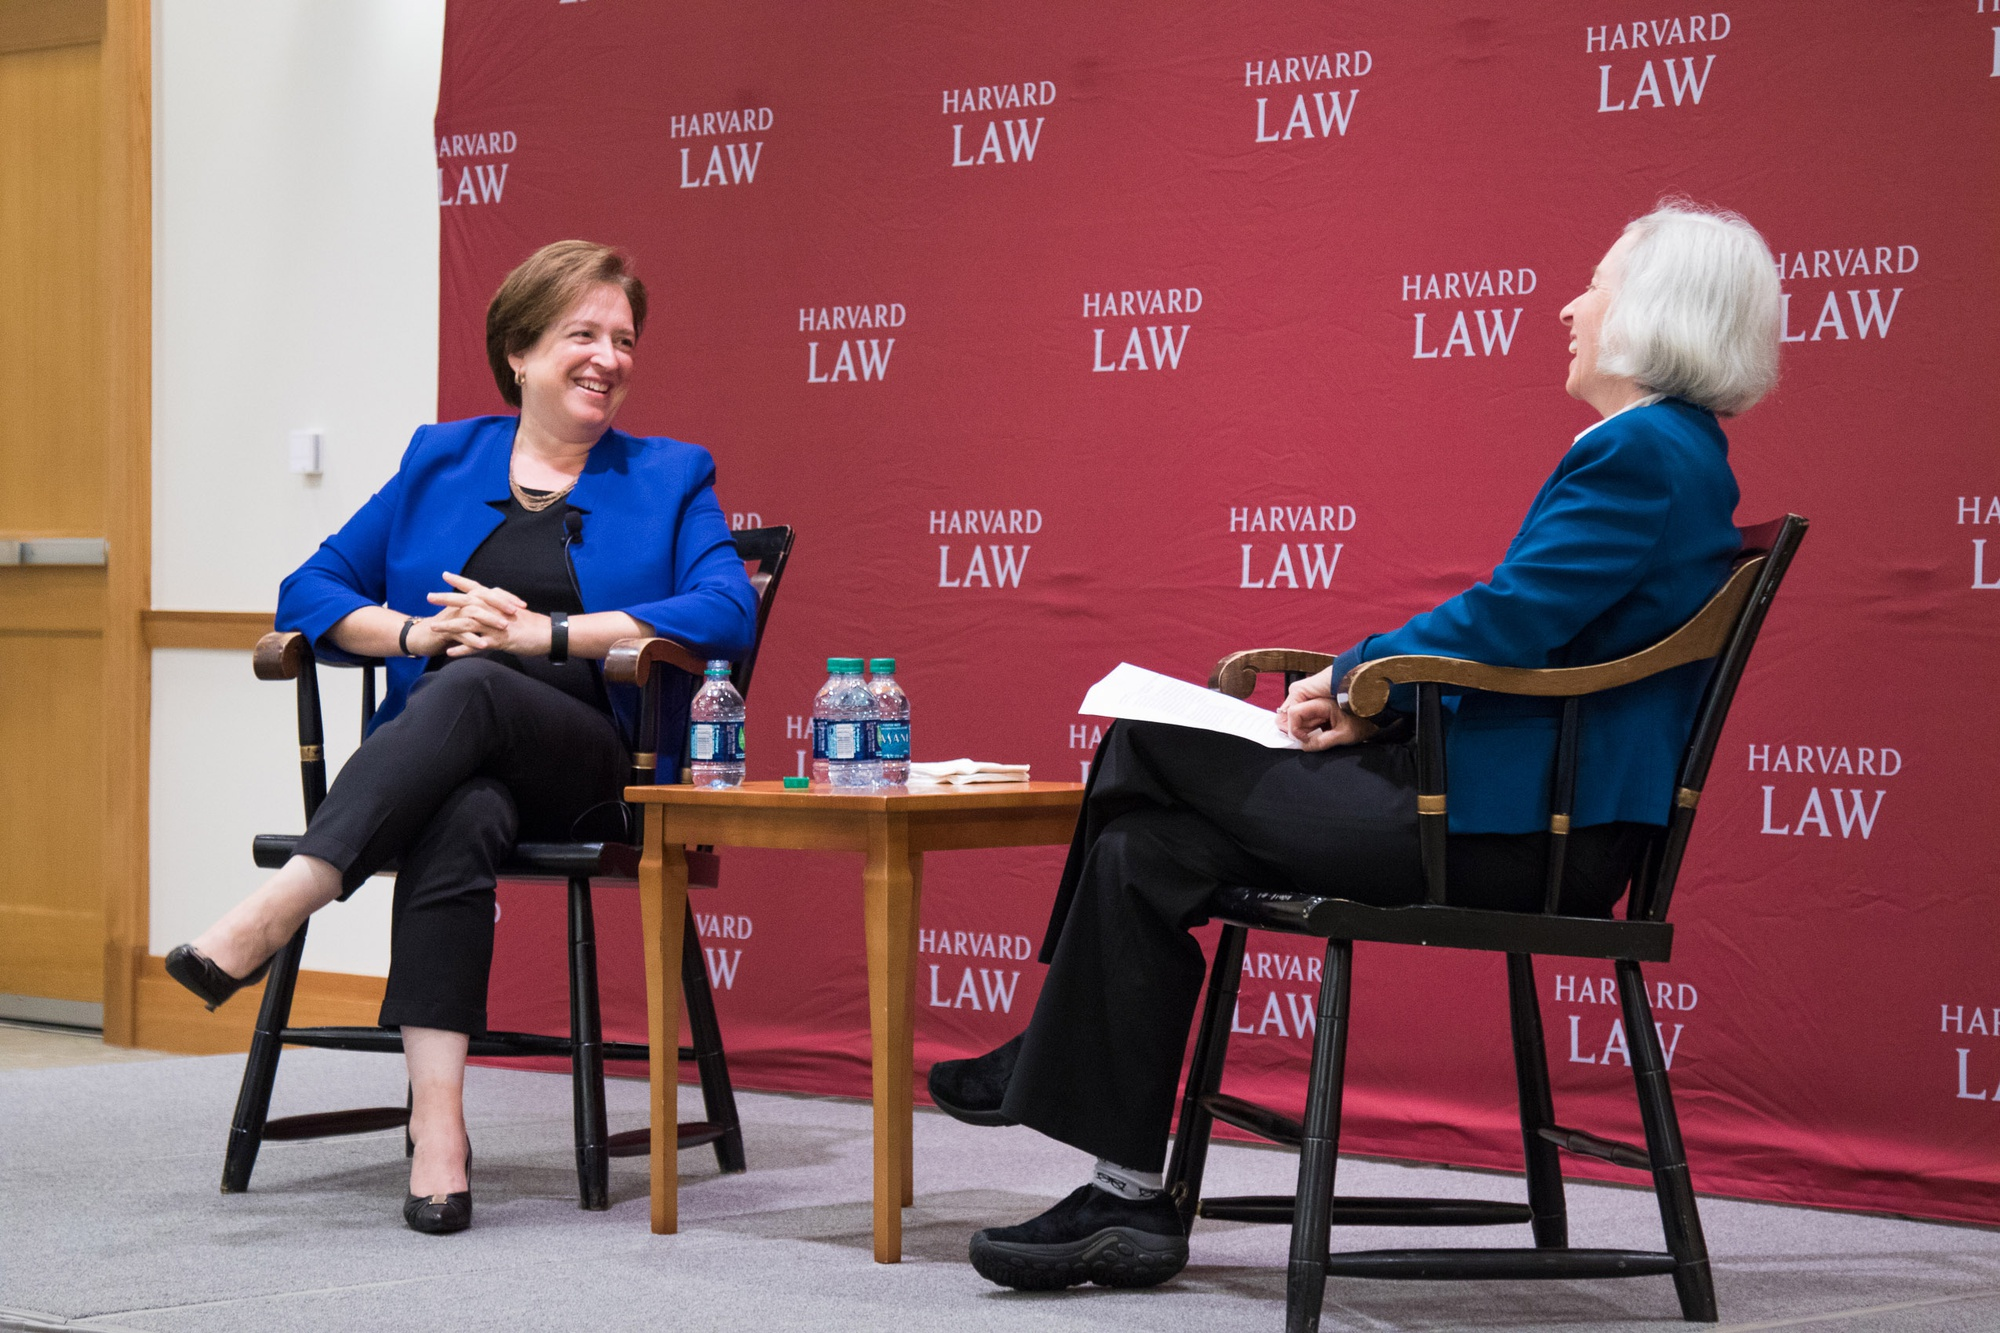 Justice of the Supreme Court Elena Kagan in conversation with Harvard Law School Dean Martha L. Minow Thursday.